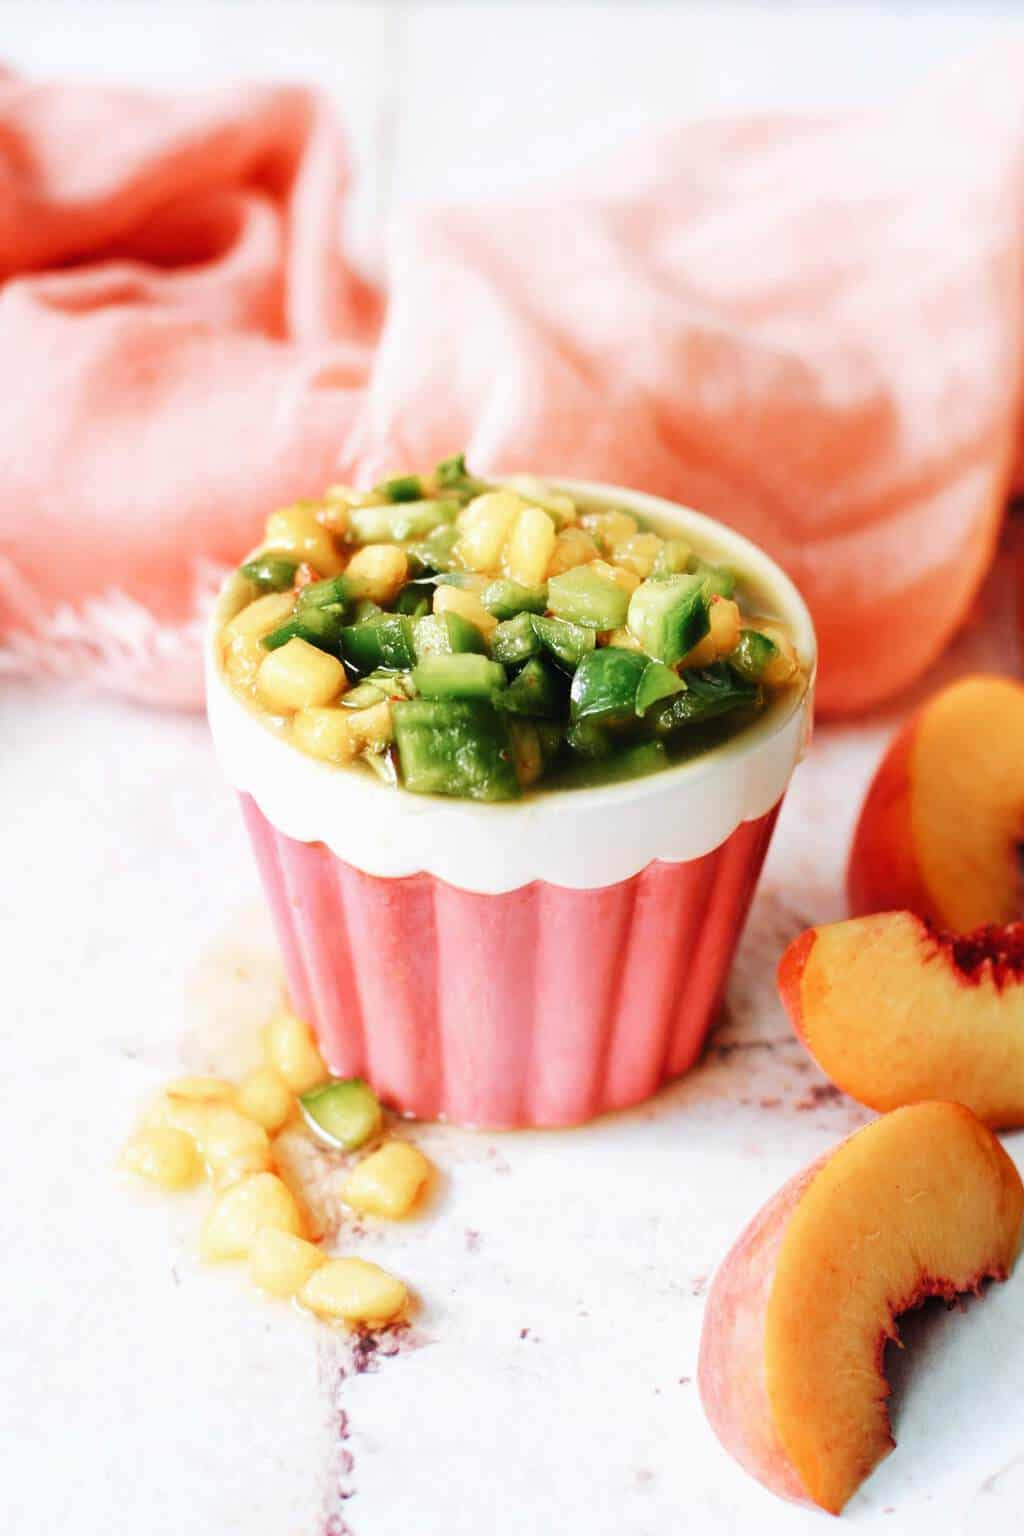 jalapeno and peach salsa in a cute pink cup with peach slices around it